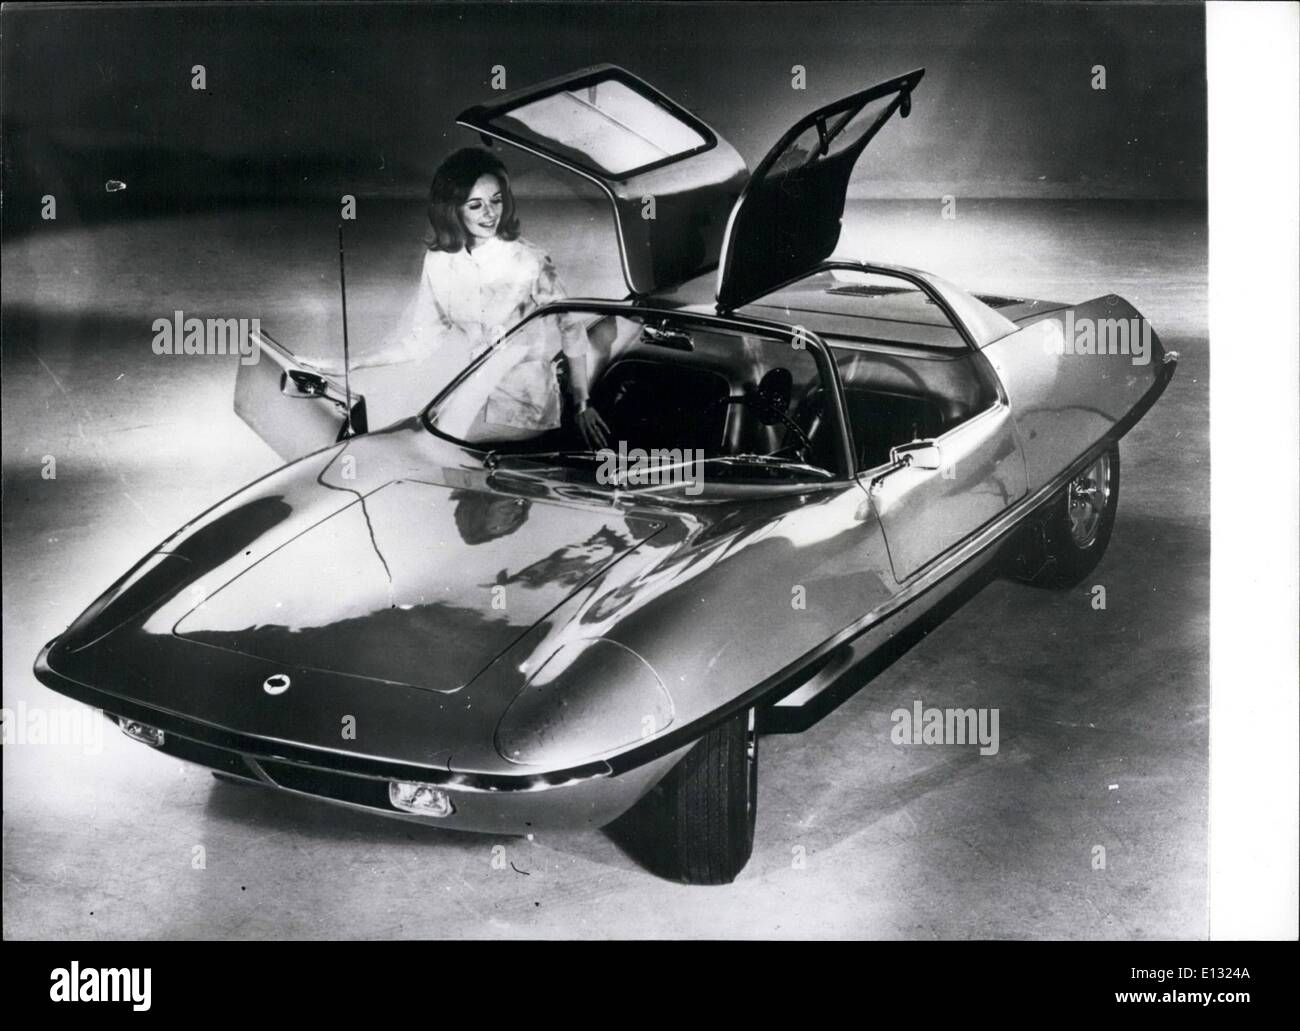 Feb. 26, 2012 - SUPER PLASTIC SPORTS CAR UNVEILED: A dynamic new sports car has made its debut in the U.S. Apart - Stock Image